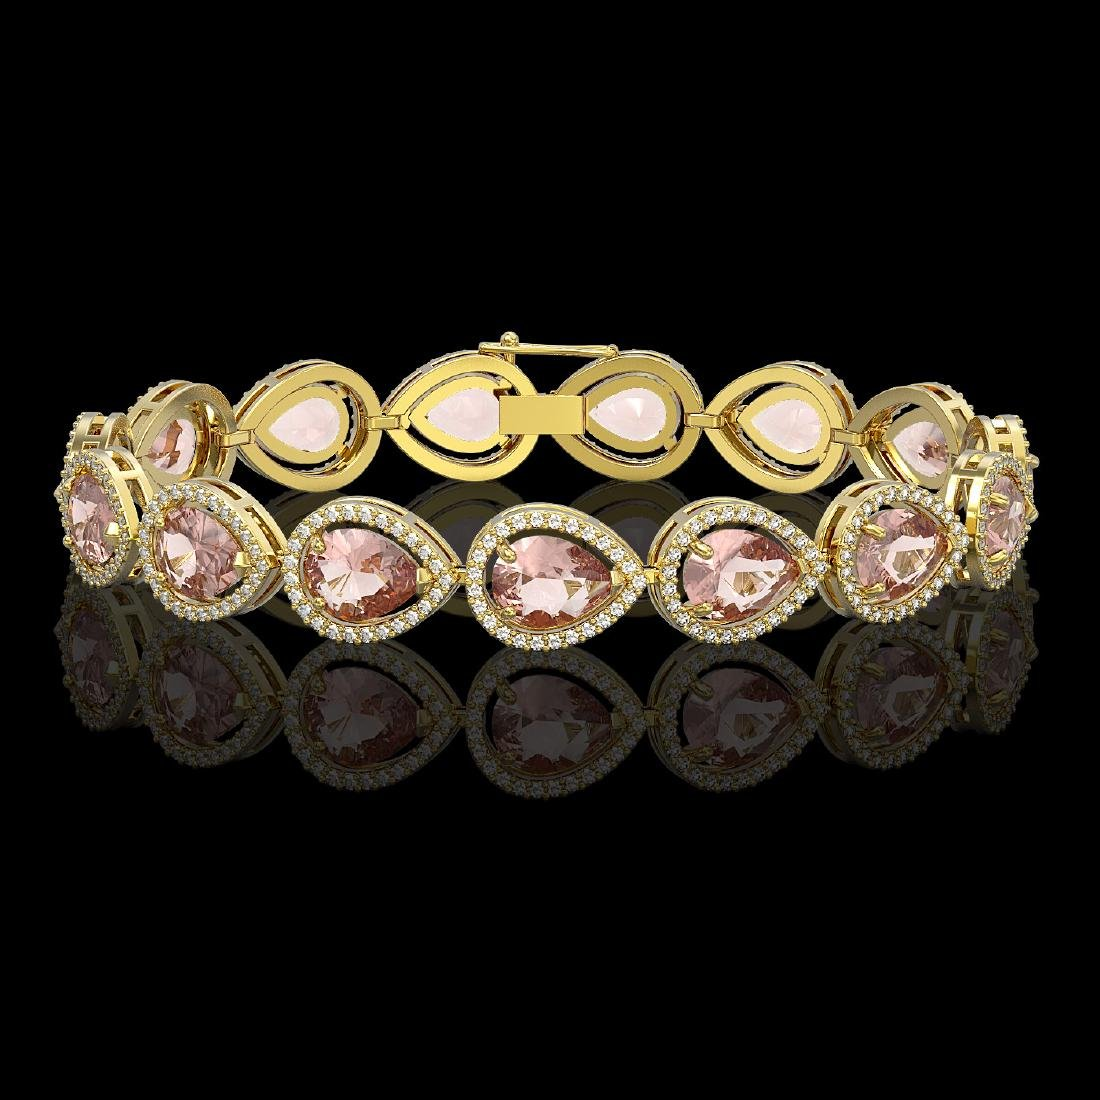 19.55 CTW Morganite & Diamond Halo Bracelet 10K Yellow